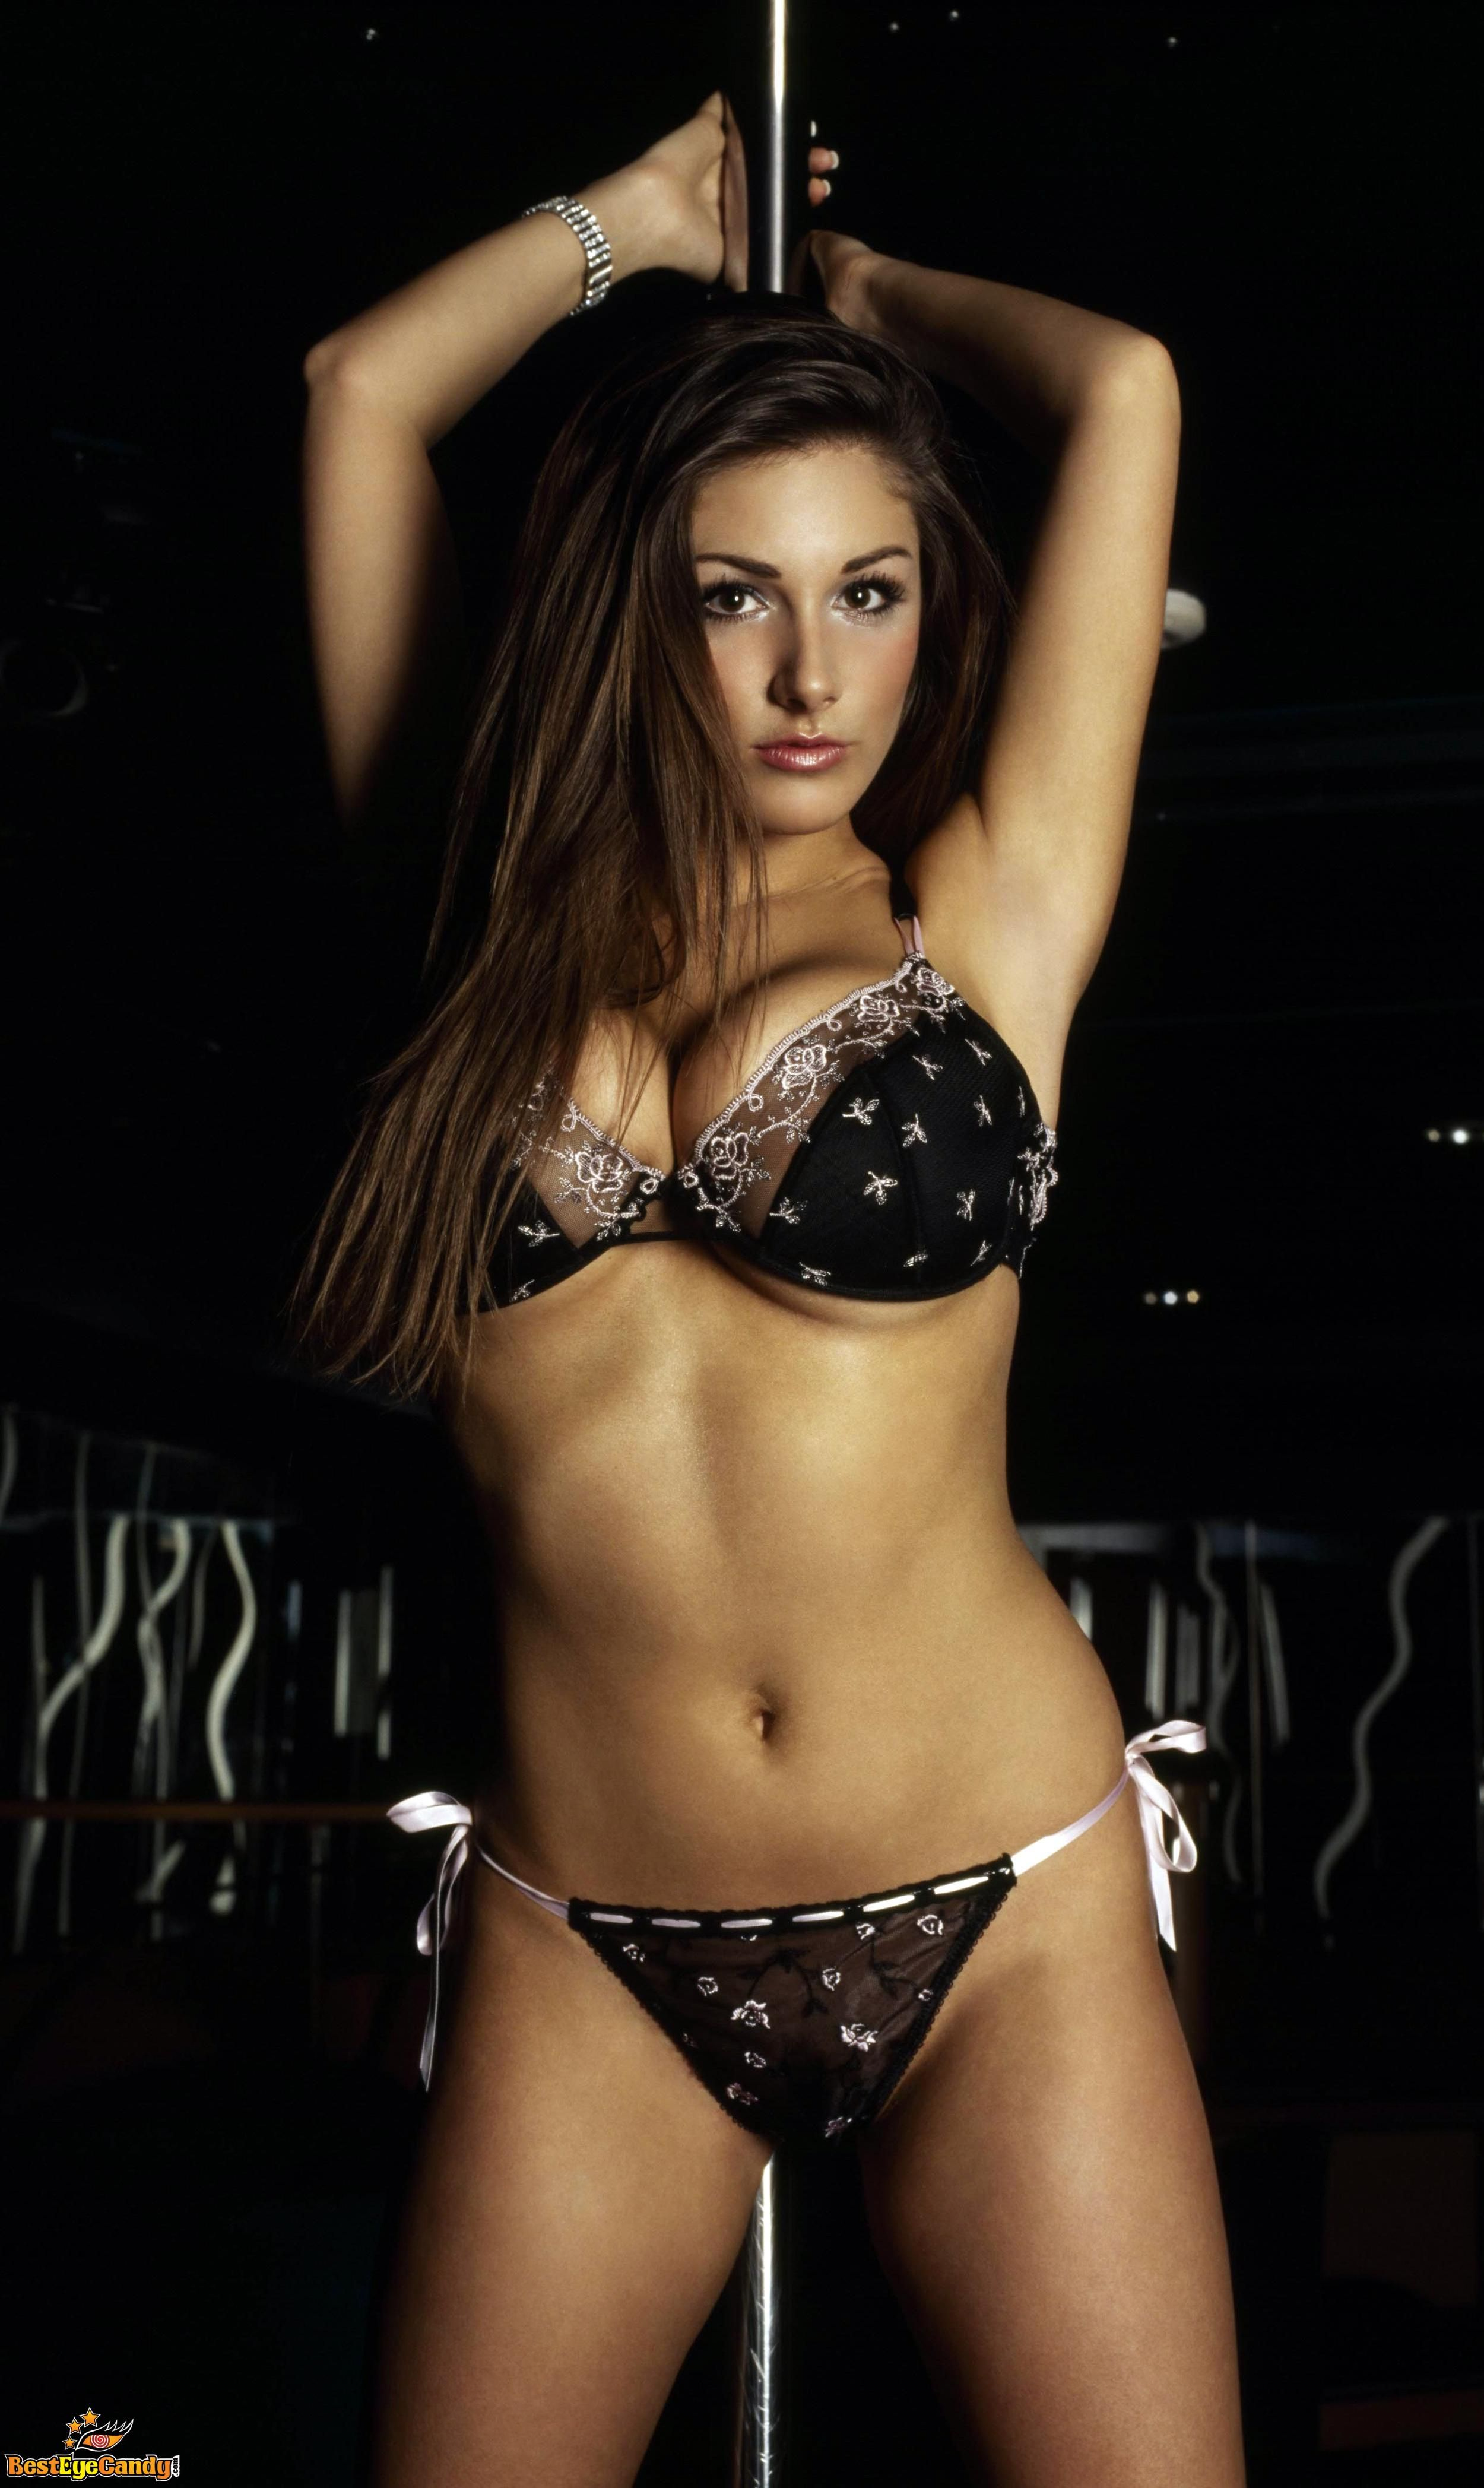 Young Lucy Pinder nudes (99 photo), Pussy, Leaked, Feet, butt 2015